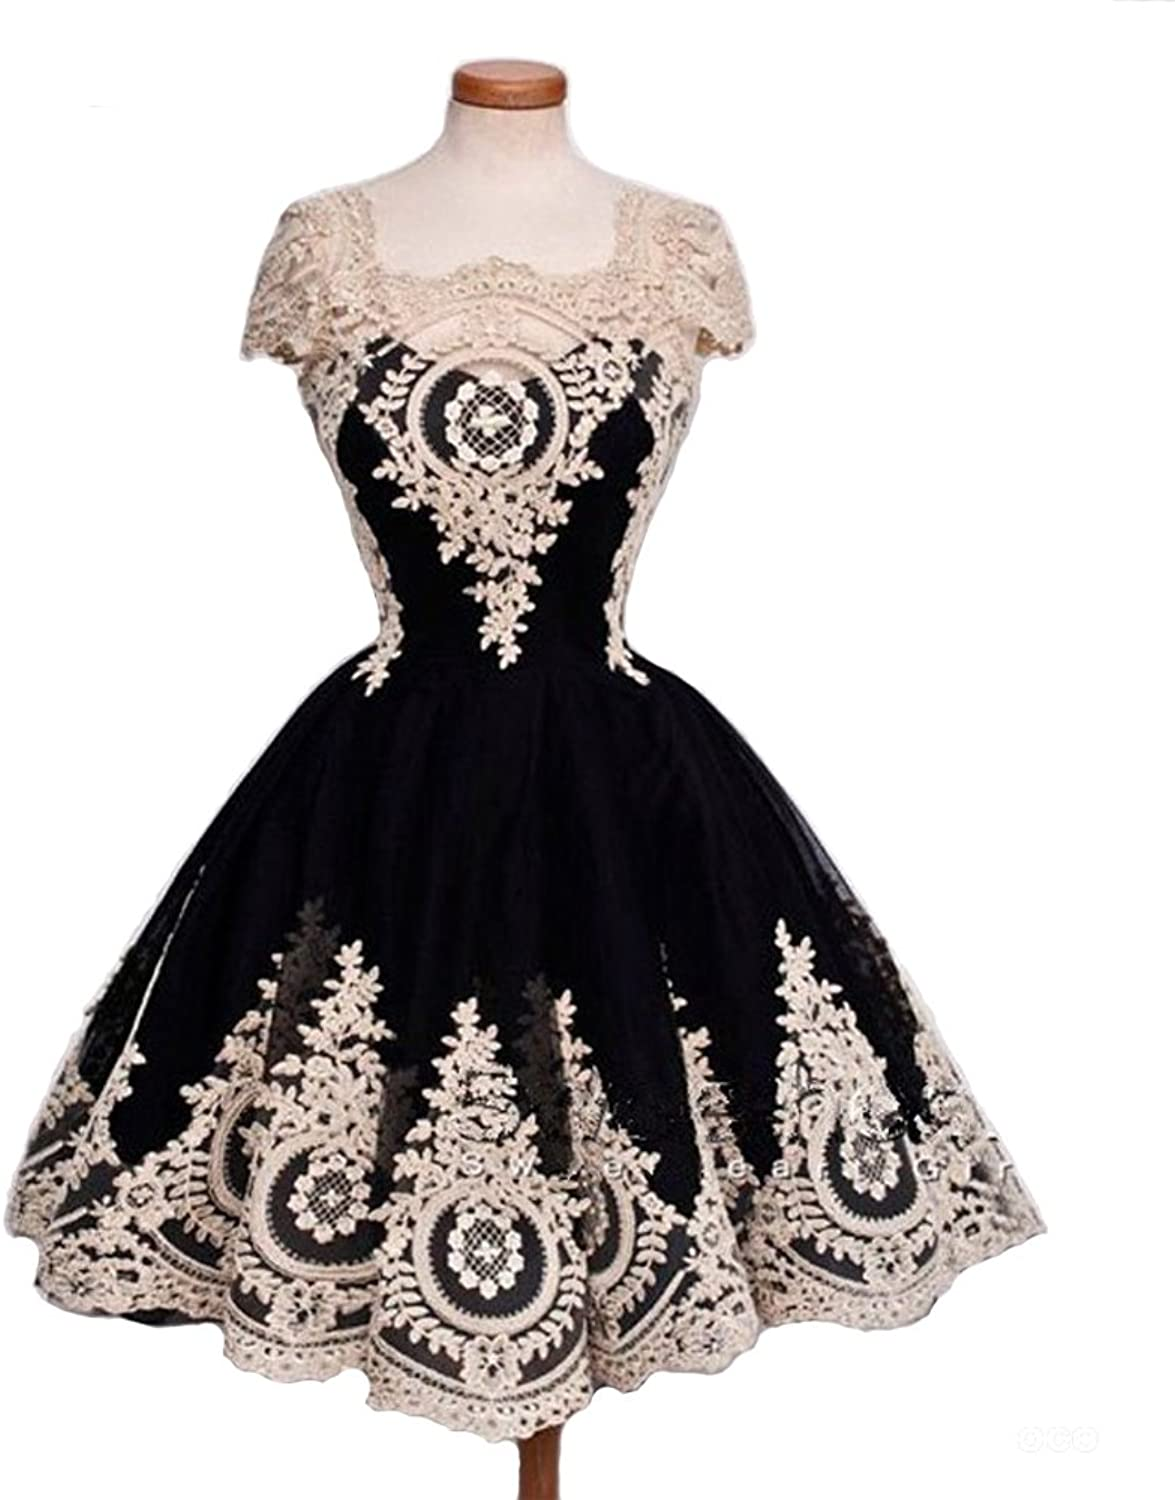 Fllbridal Cocktail Gowns Luxury Appliques Sequare Collar ALine Party Gowns